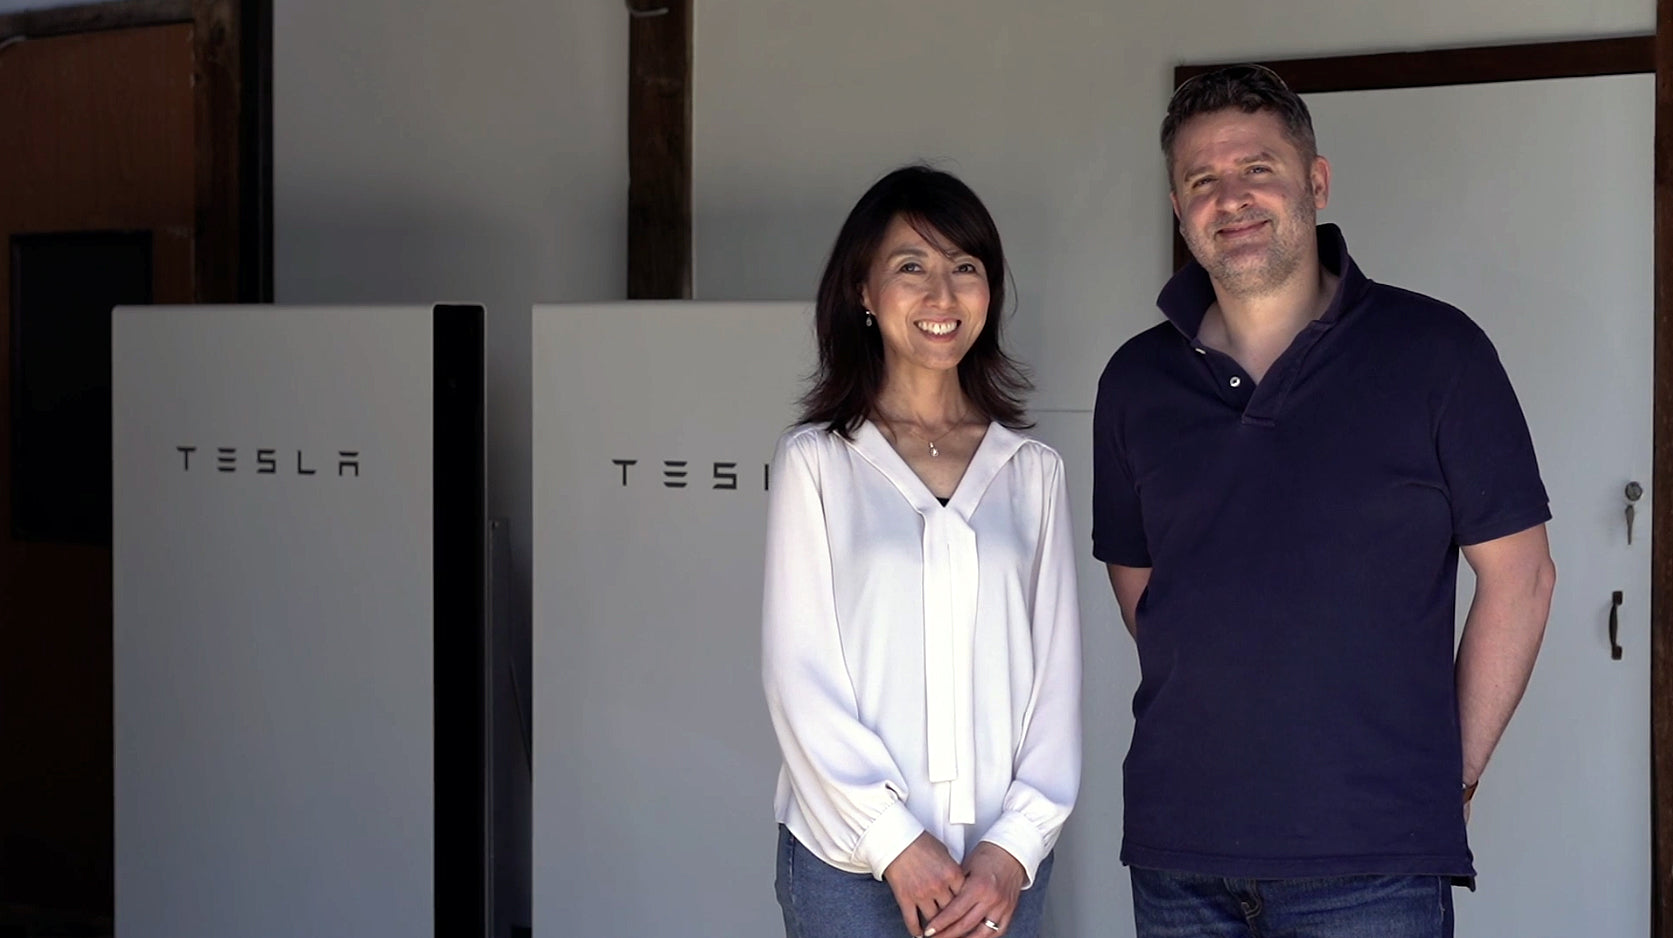 Tesla Starts Powerwall Installation in Japan as Energy Business Expansion Continues Globally